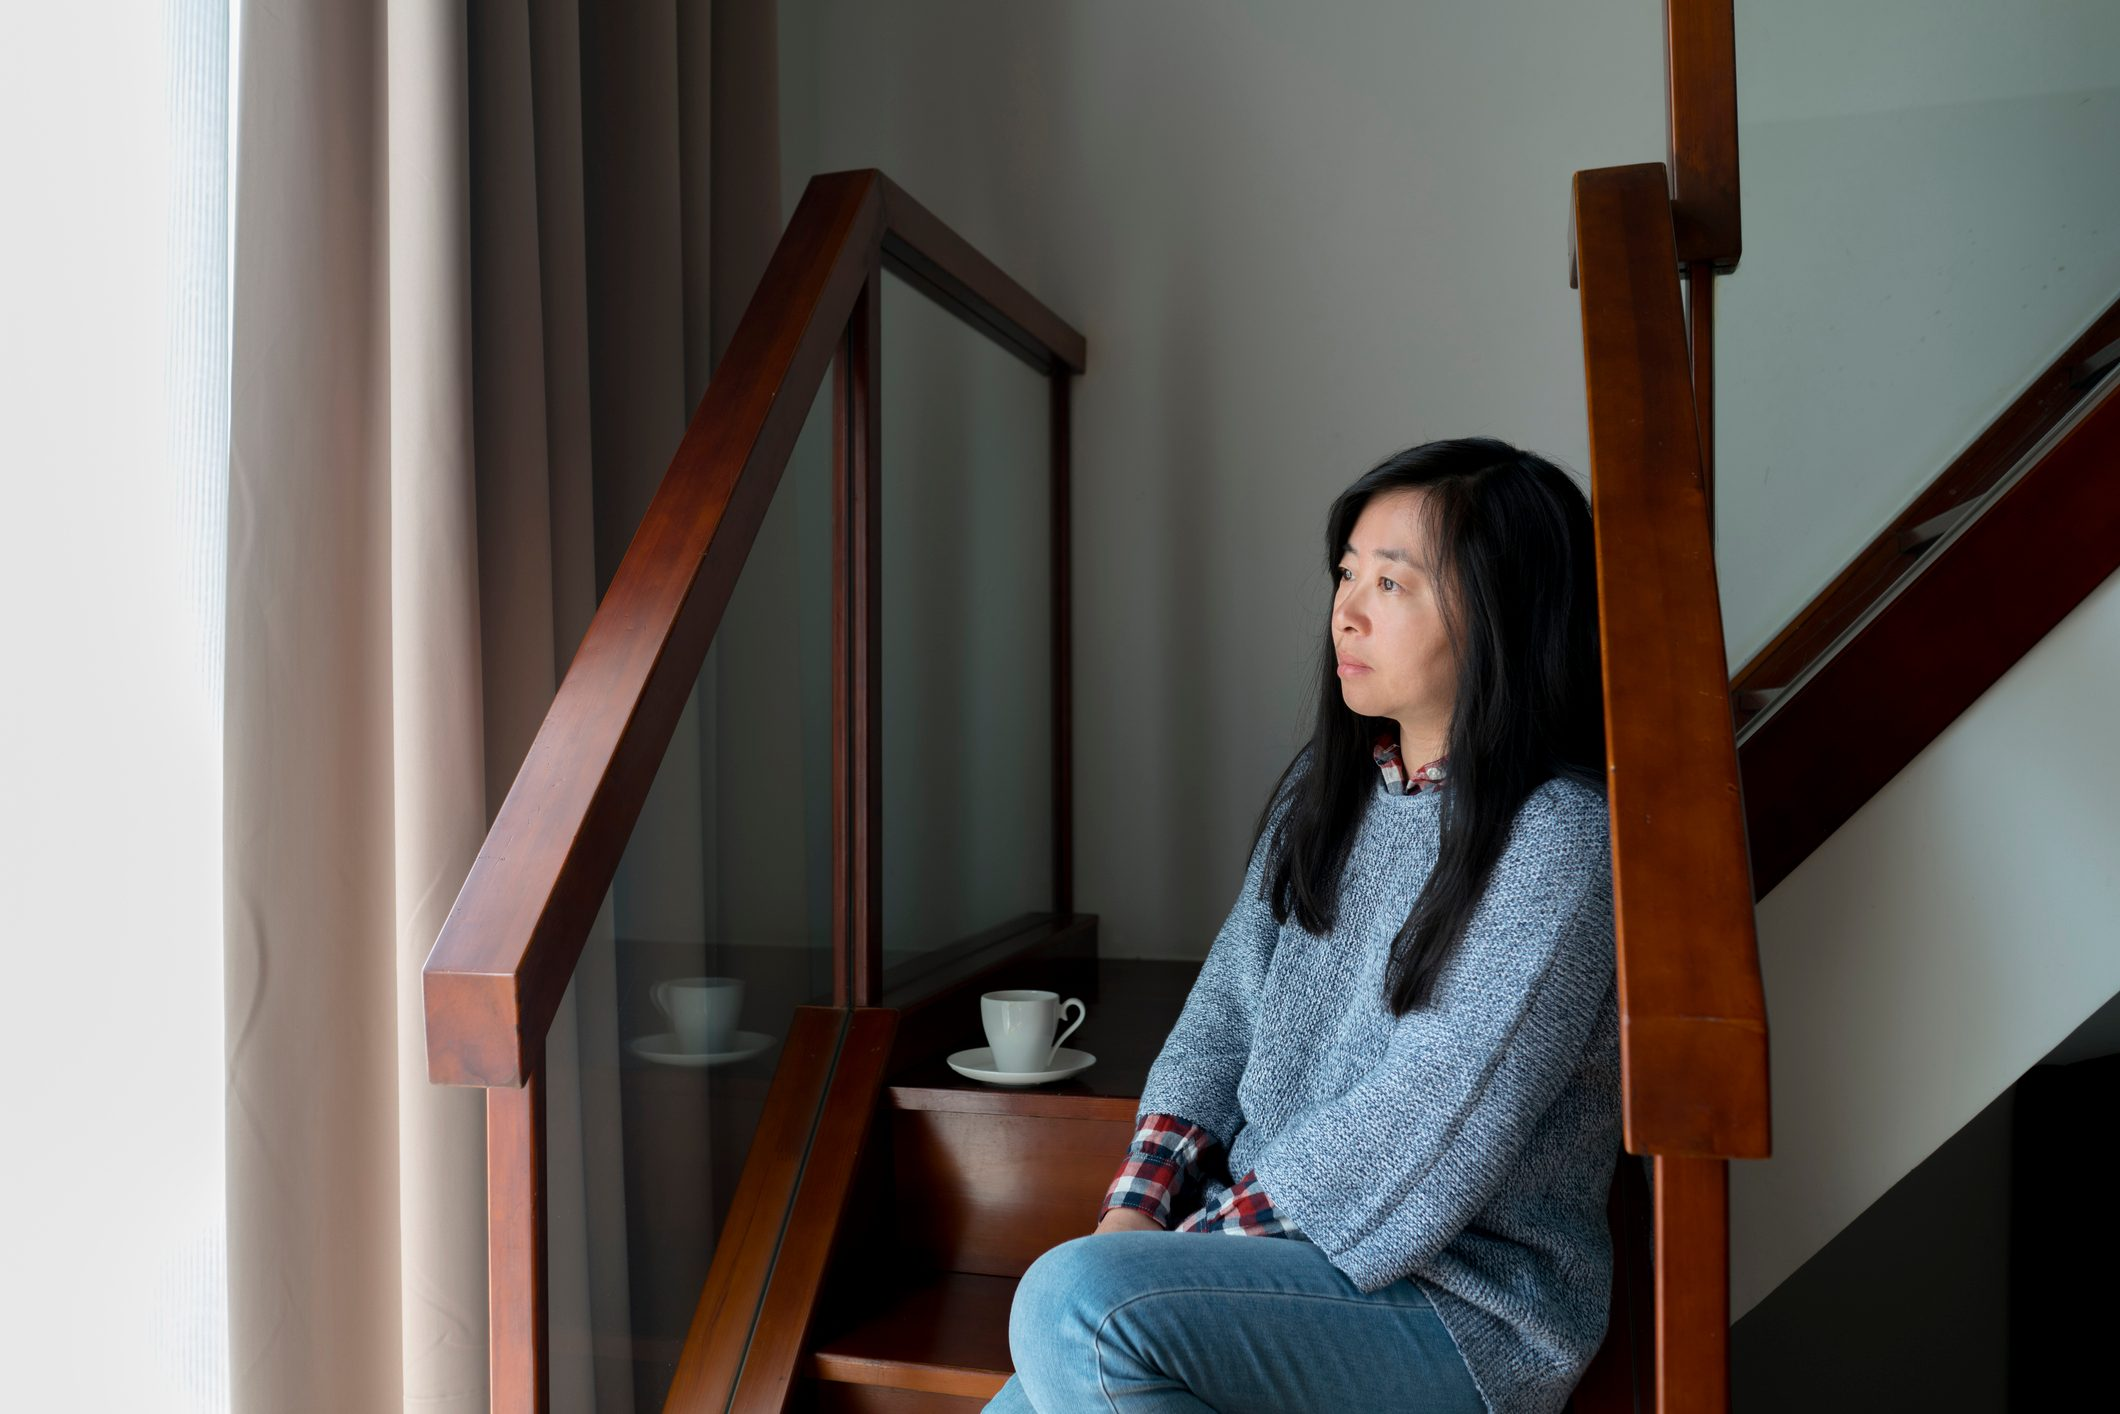 woman sitting at home looking out the window